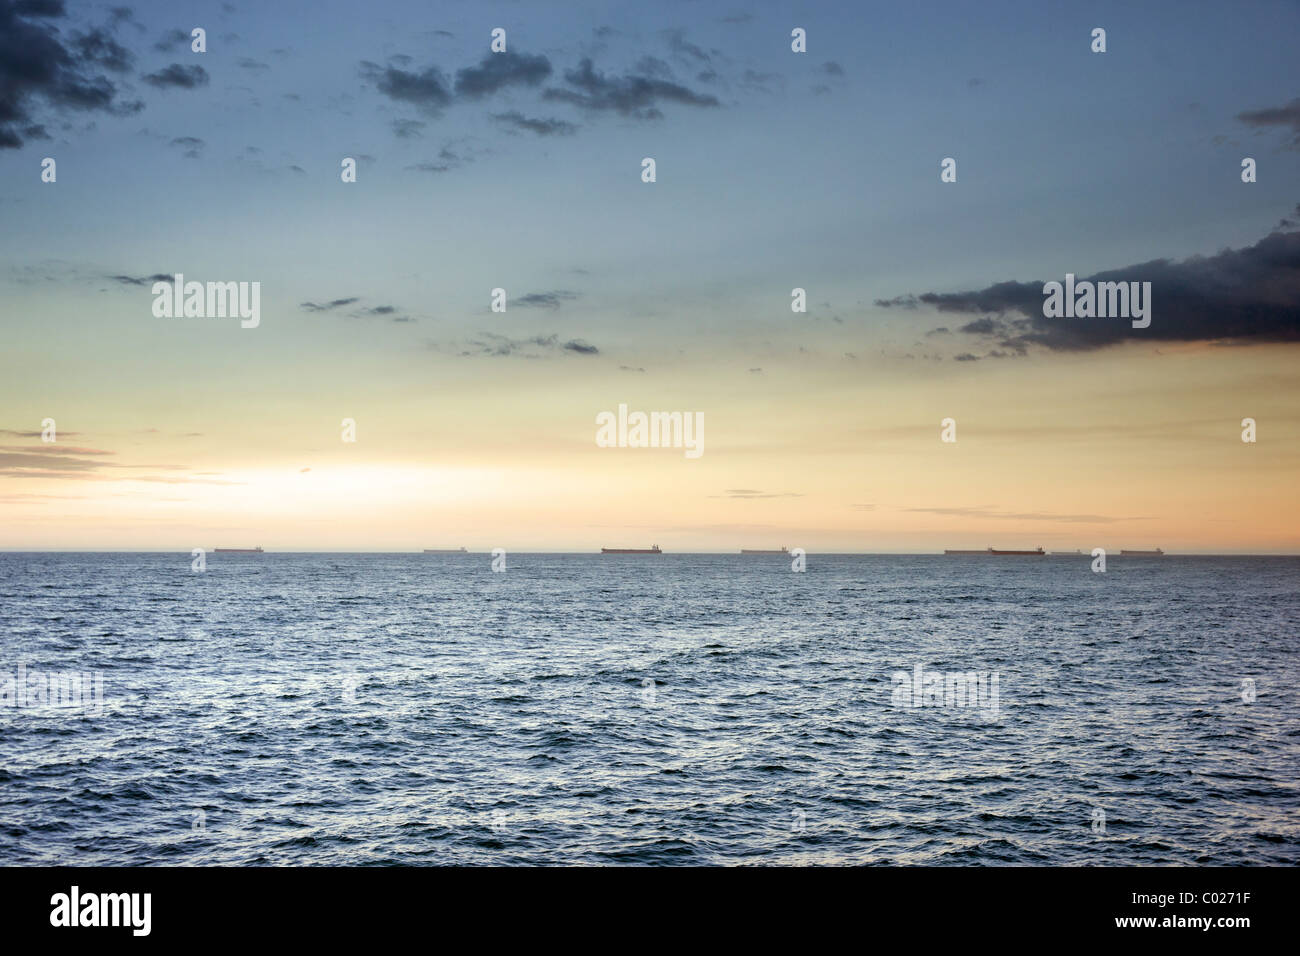 beautiful ocean waves at sunset newcastle australia Stock Photo